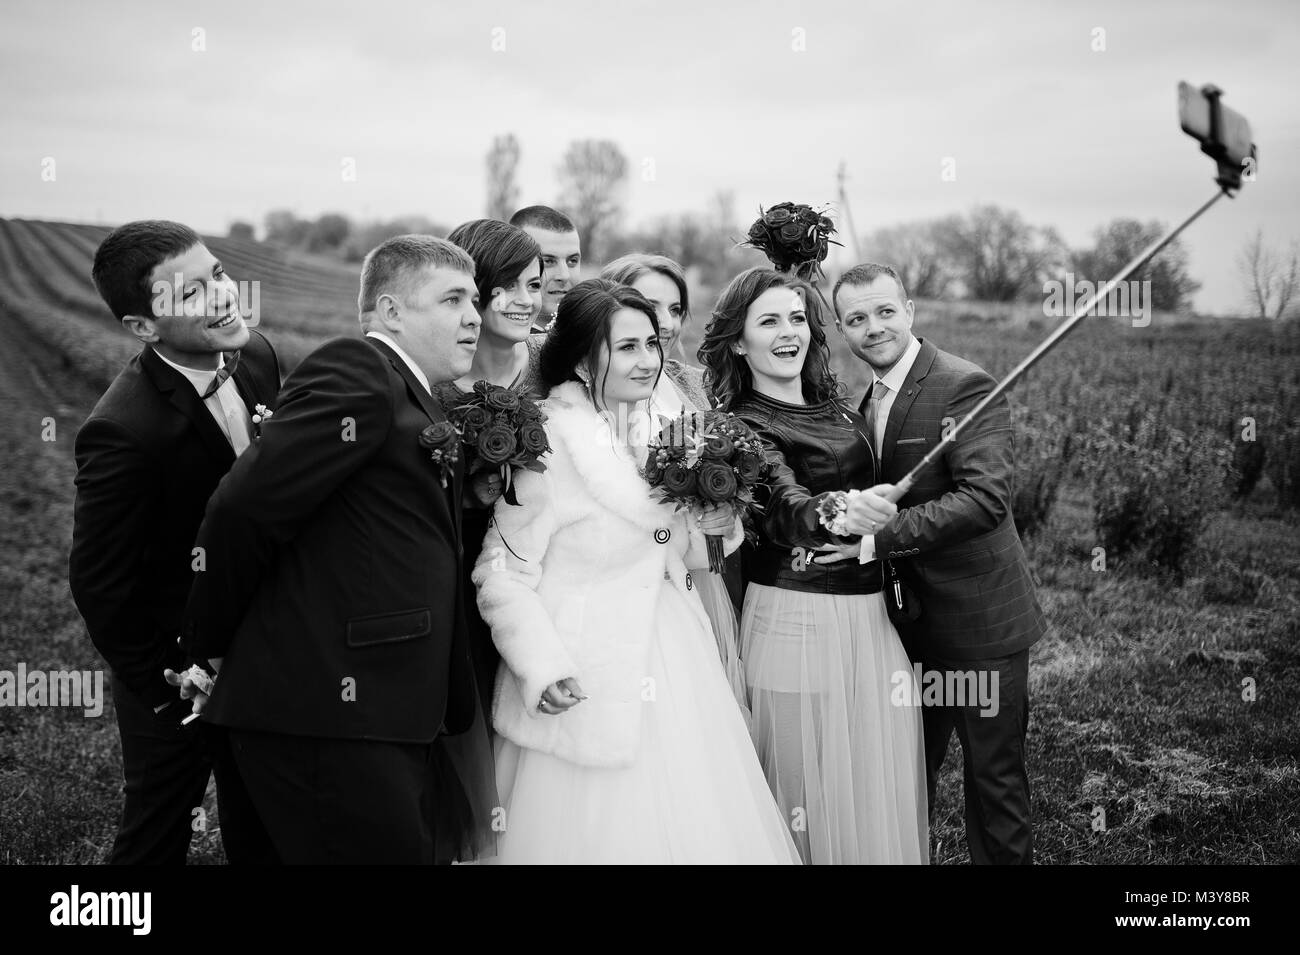 Wedding couple groomsmen and bridesmaids taking selfie in blackcurrant field black and white photo